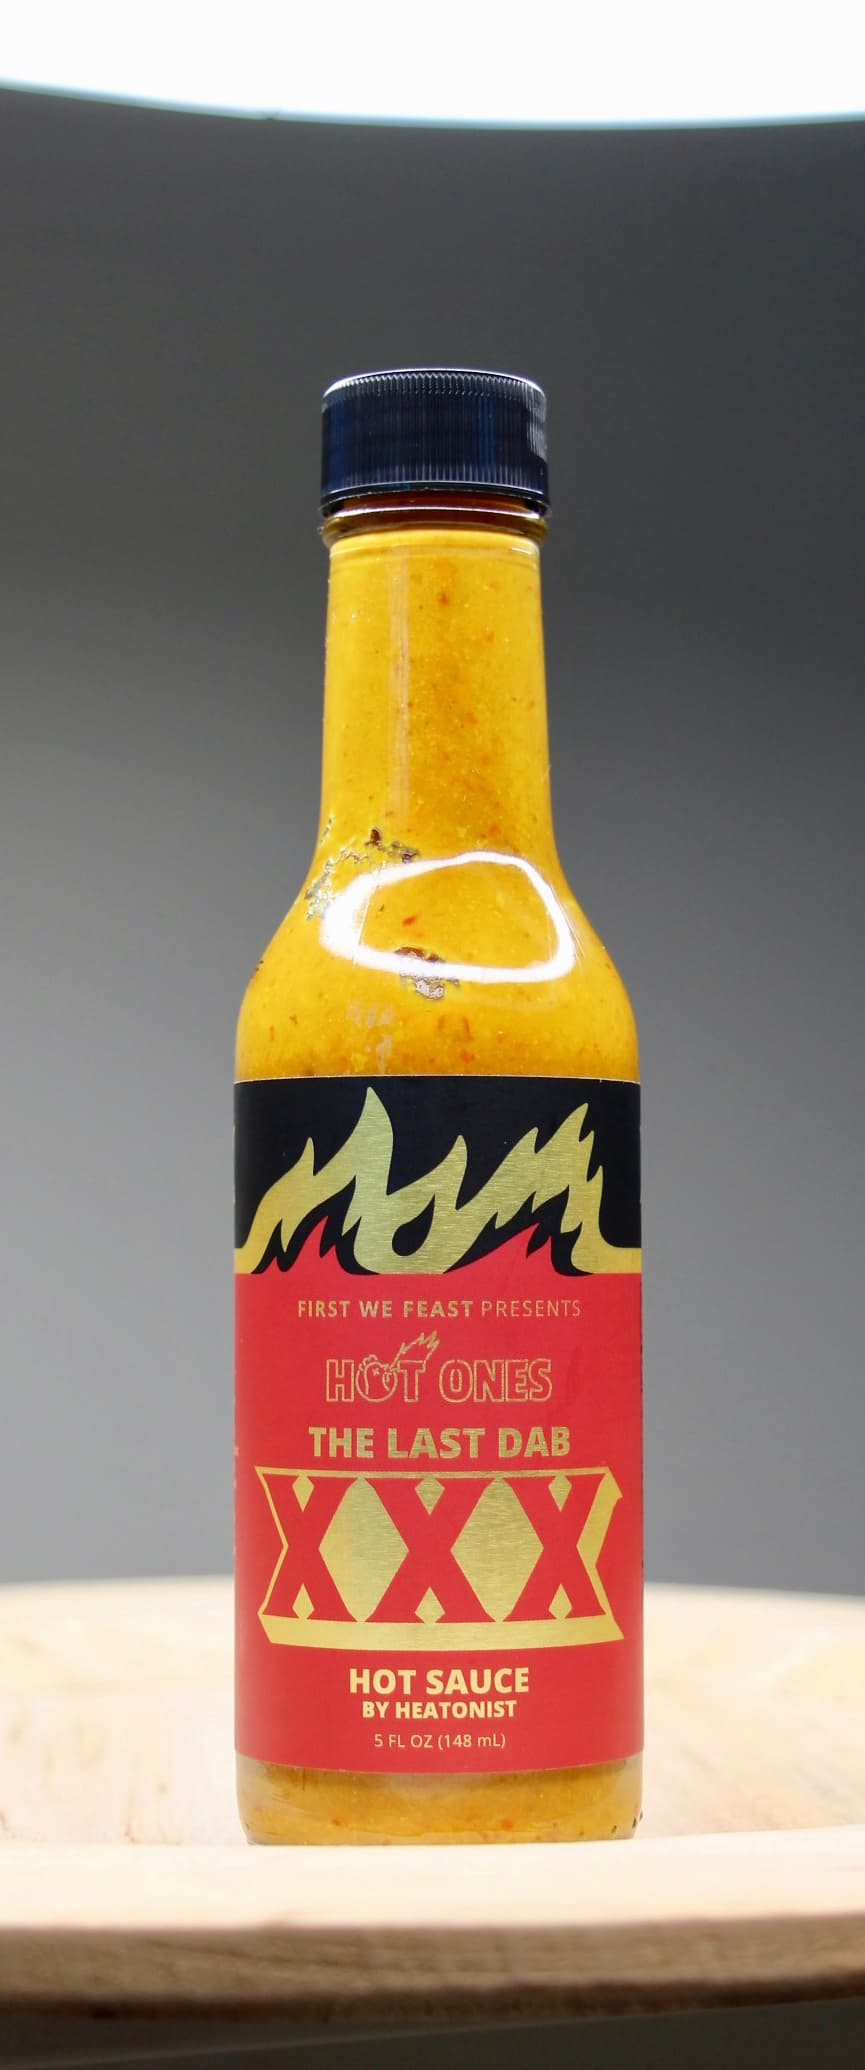 The Last Dab XXX Scoville